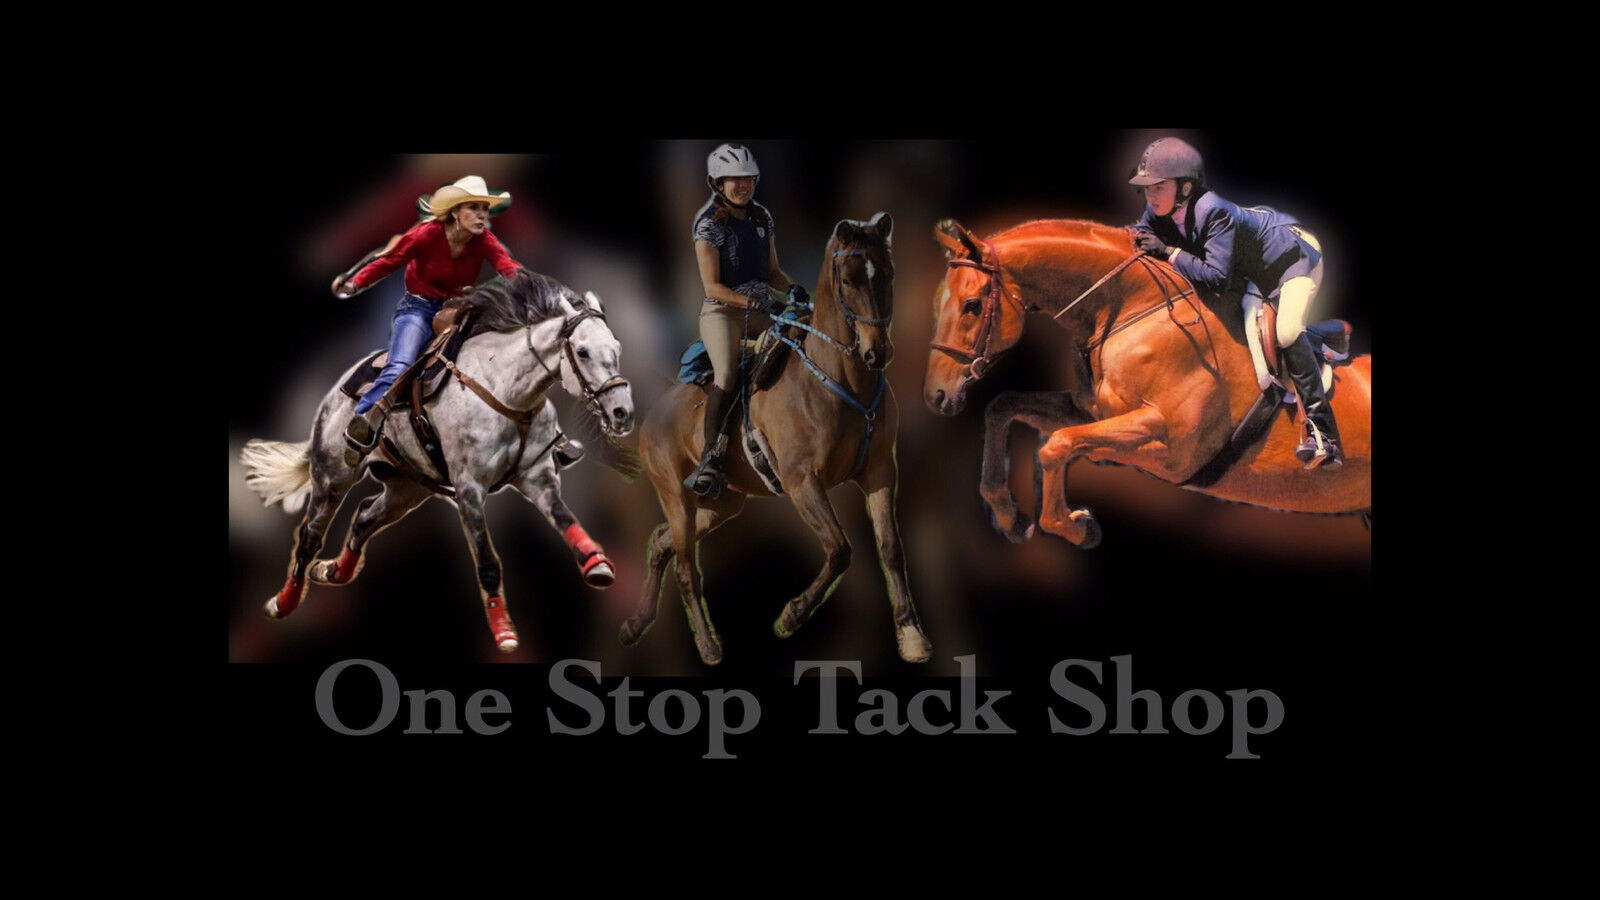 One Stop Tack Shop